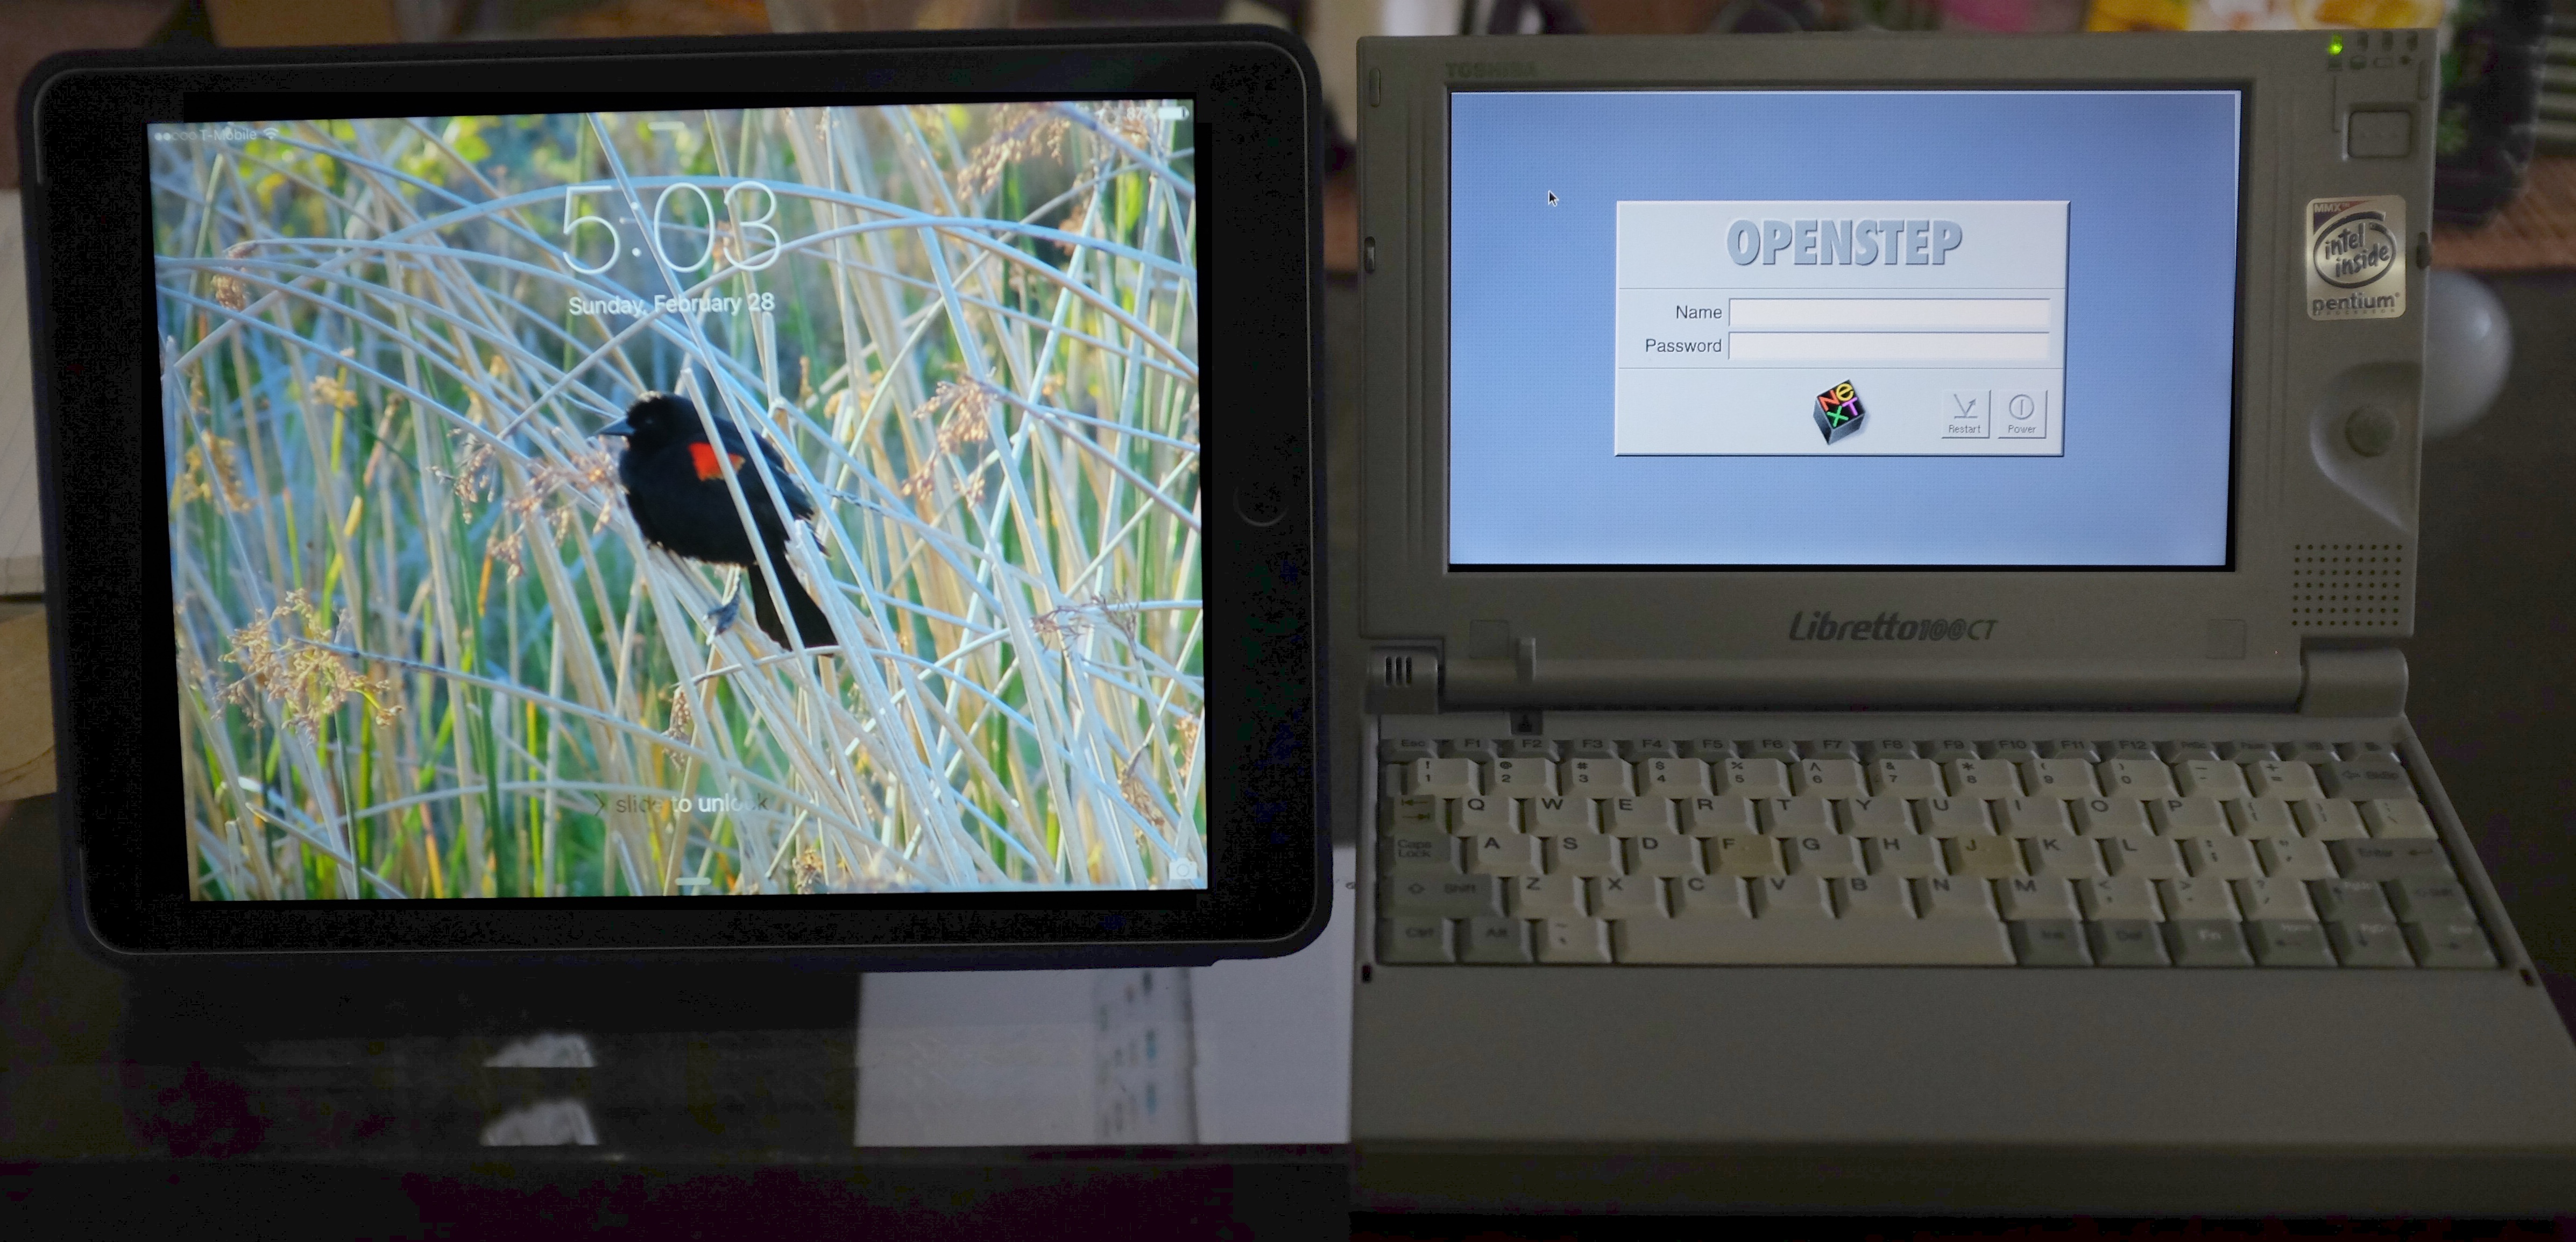 Libretto with iPad Air 2